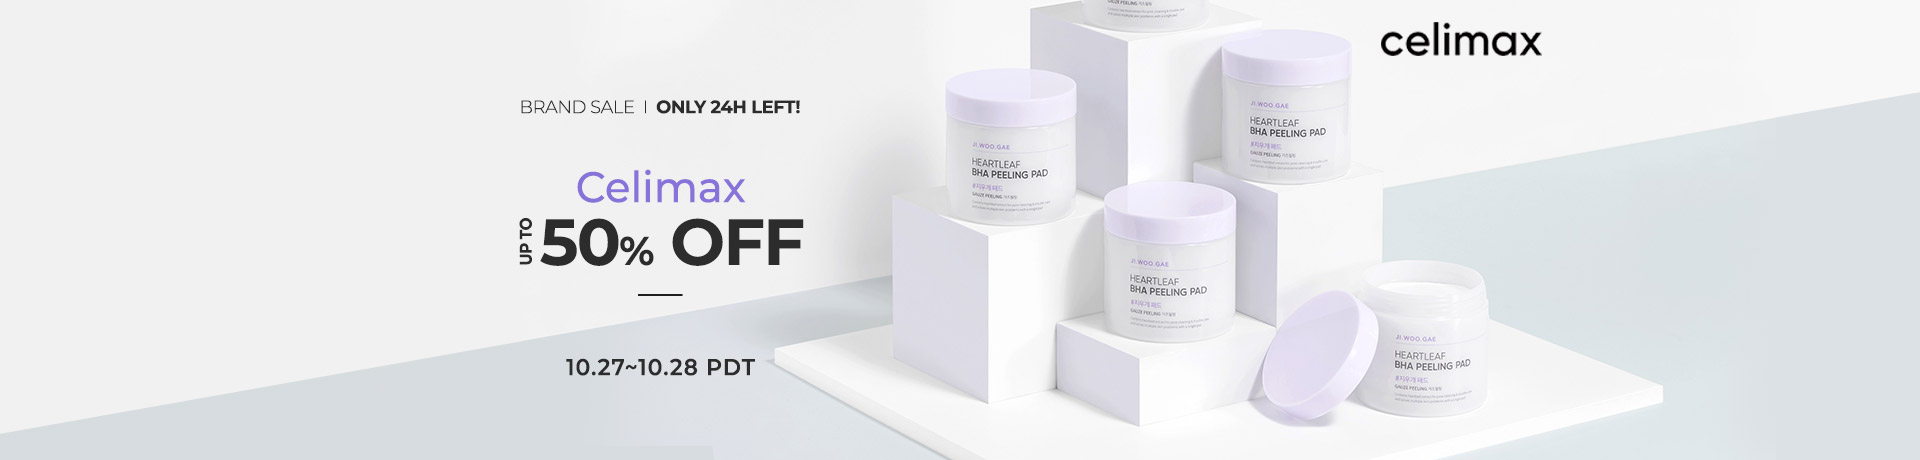 celimax Up to 50% OFF